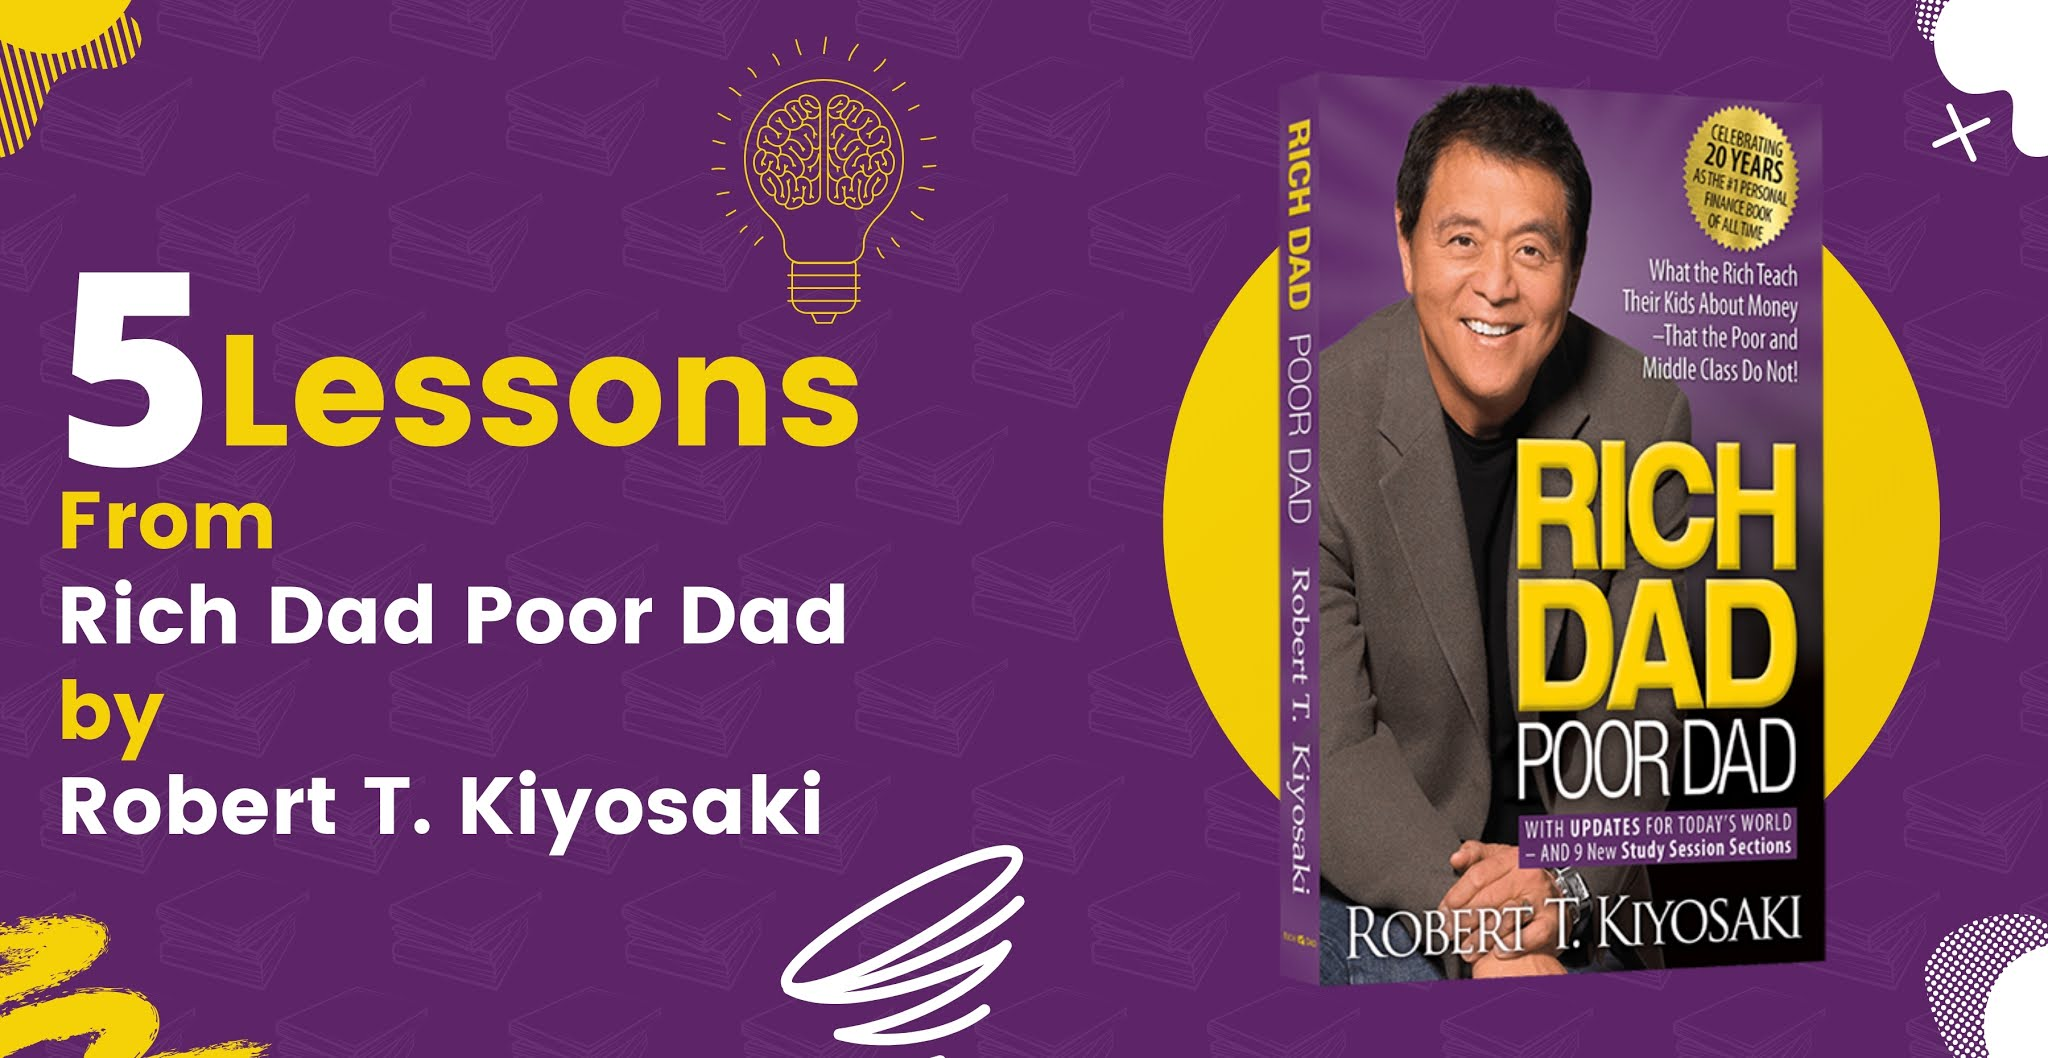 5 lessons from Rich Dad Poor Dad by Robert T. Kiyosaki